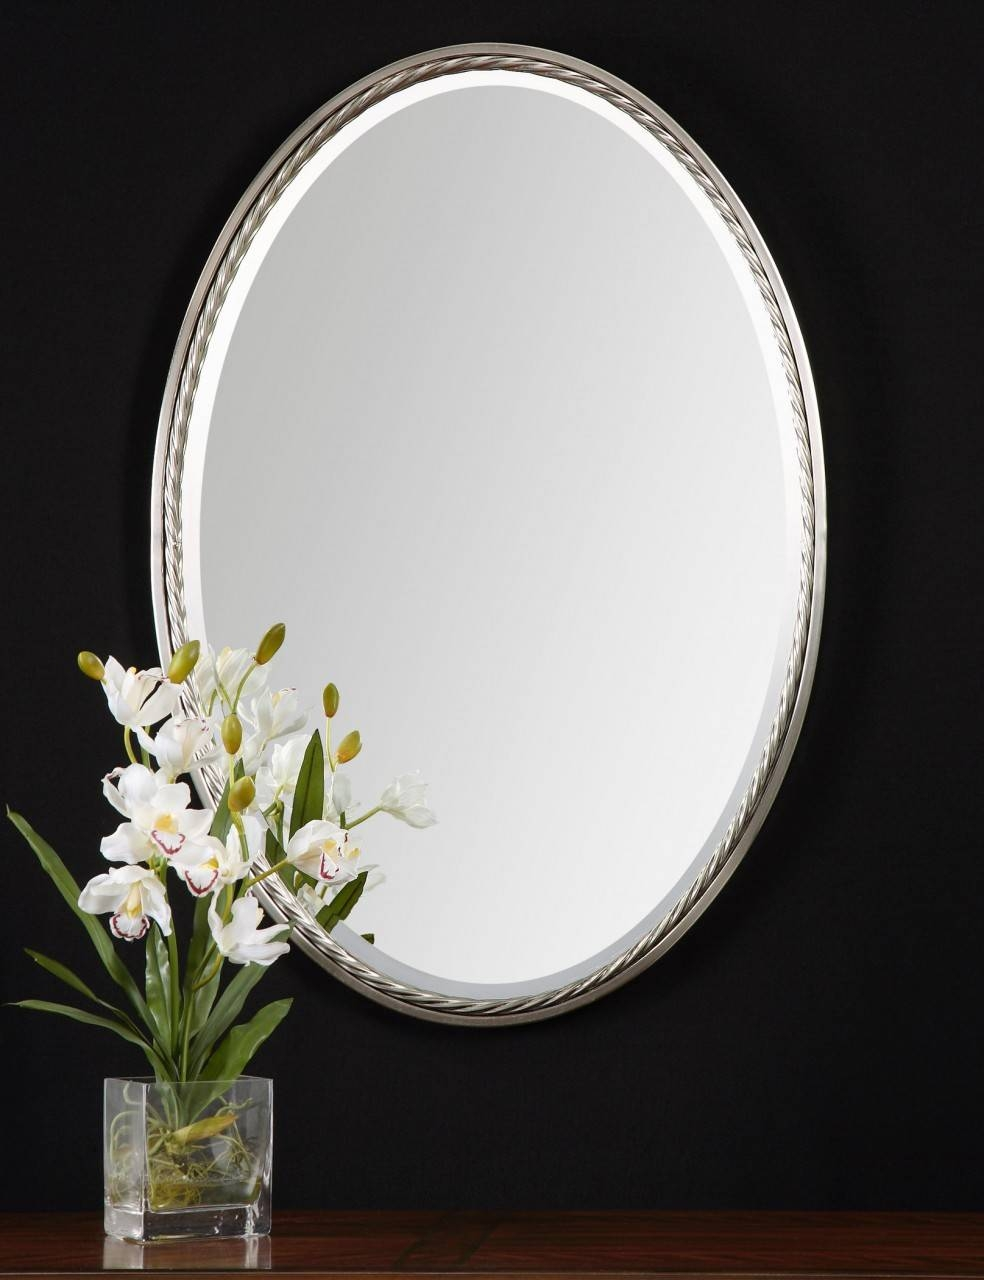 Bathroom Wall Mirrors Brushed Nickel 107 Breathtaking Decor Plus regarding Oval Mirrors For Walls (Image 4 of 25)